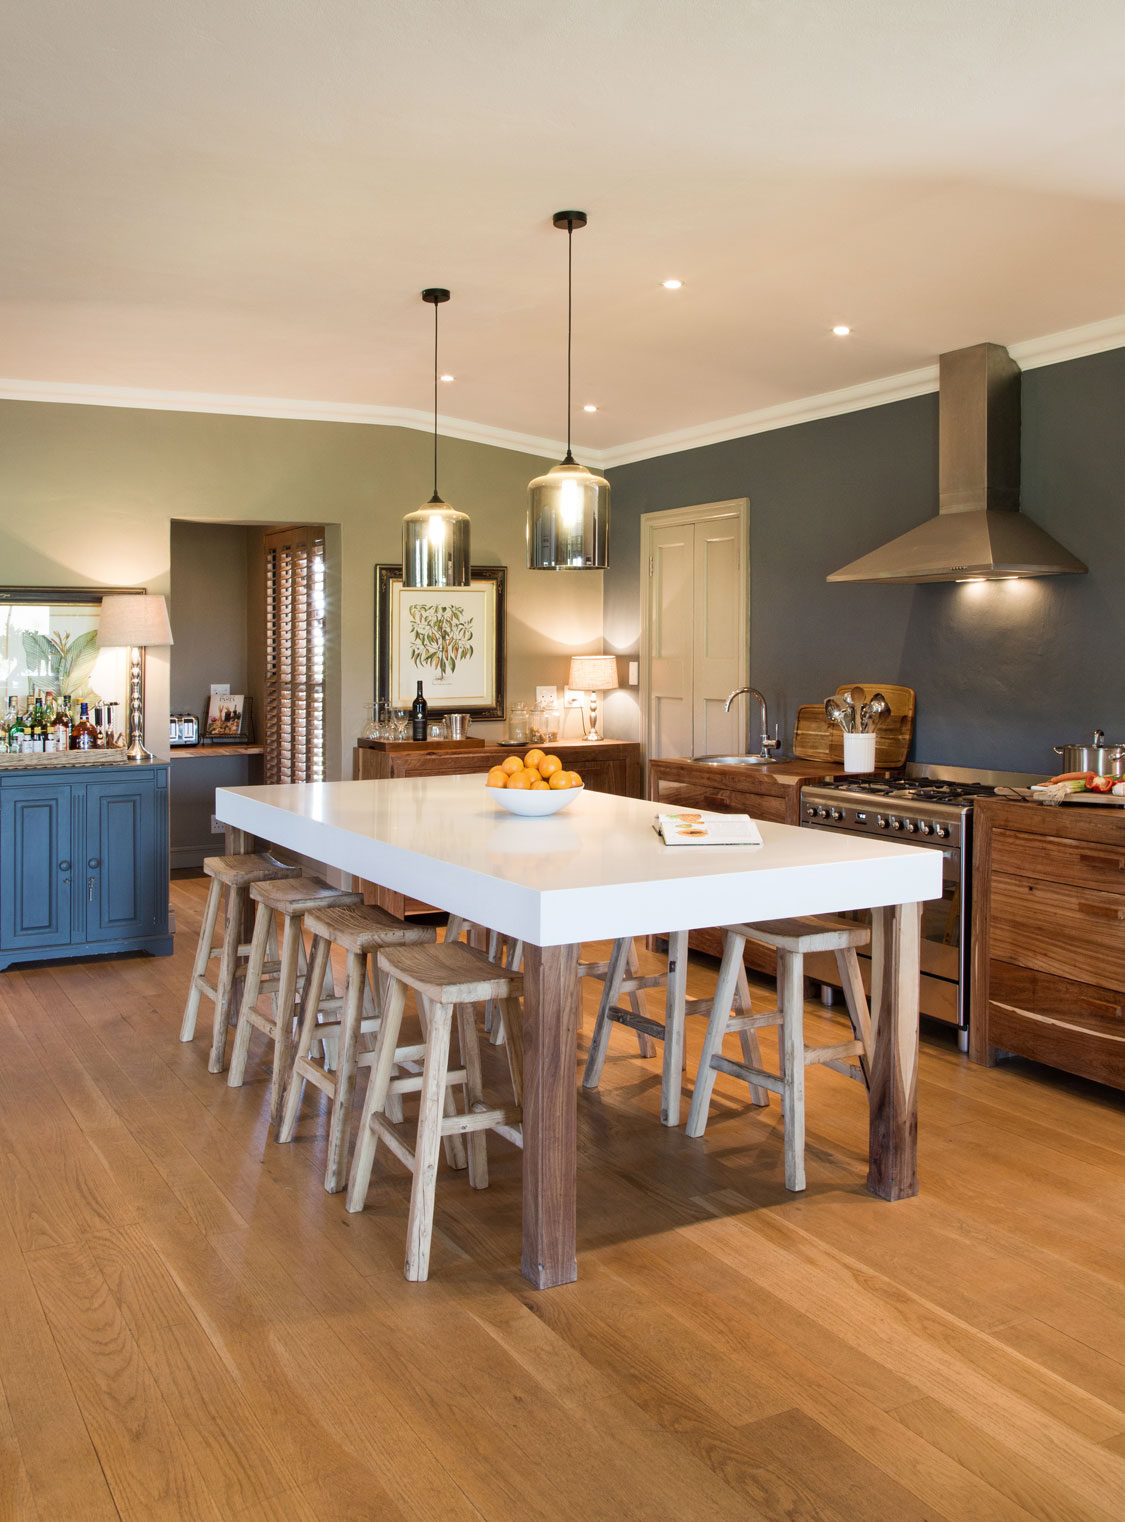 Midlands farmhouse kitchen